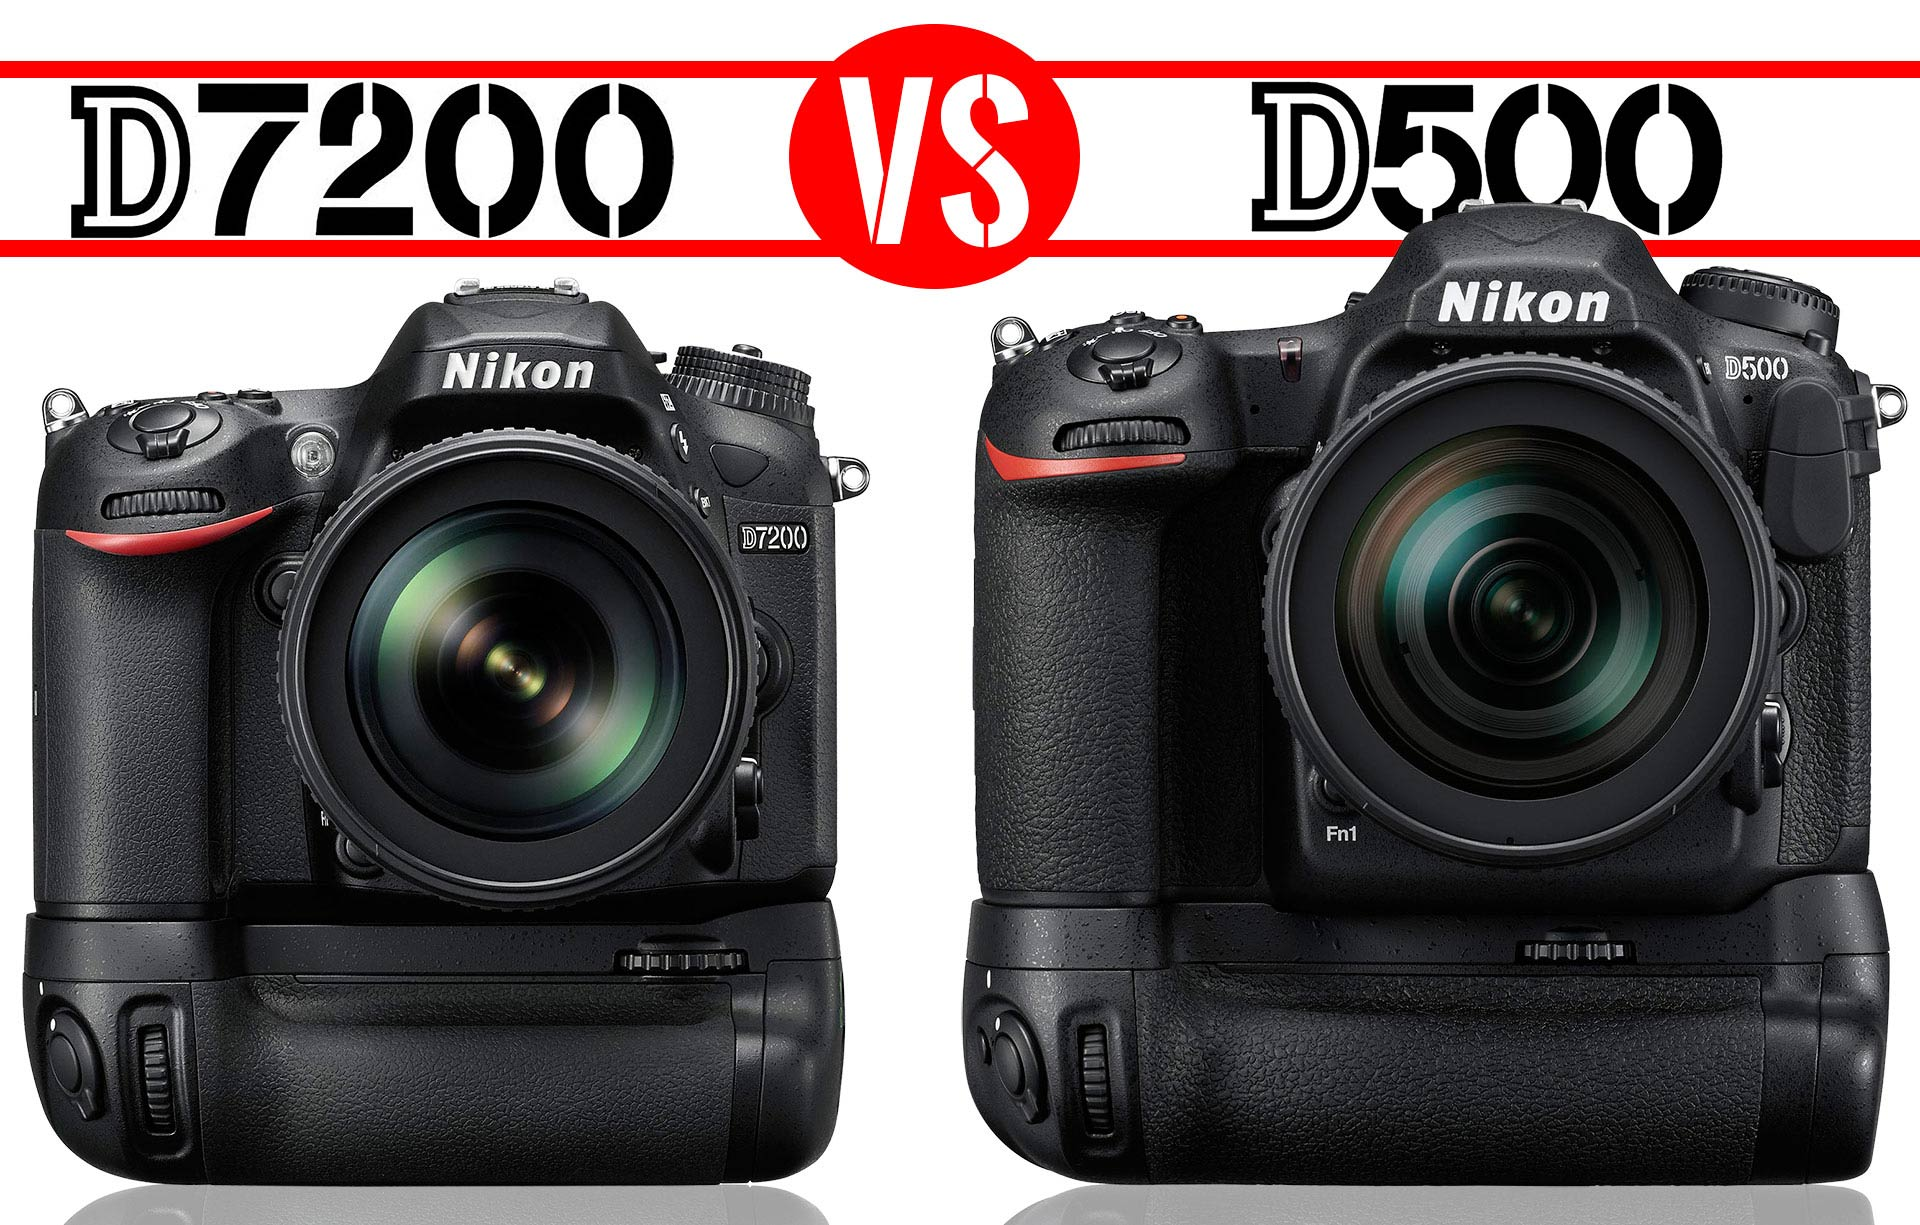 Nikon D7200 vs D500 : Which Should You Buy? - Light And Matter